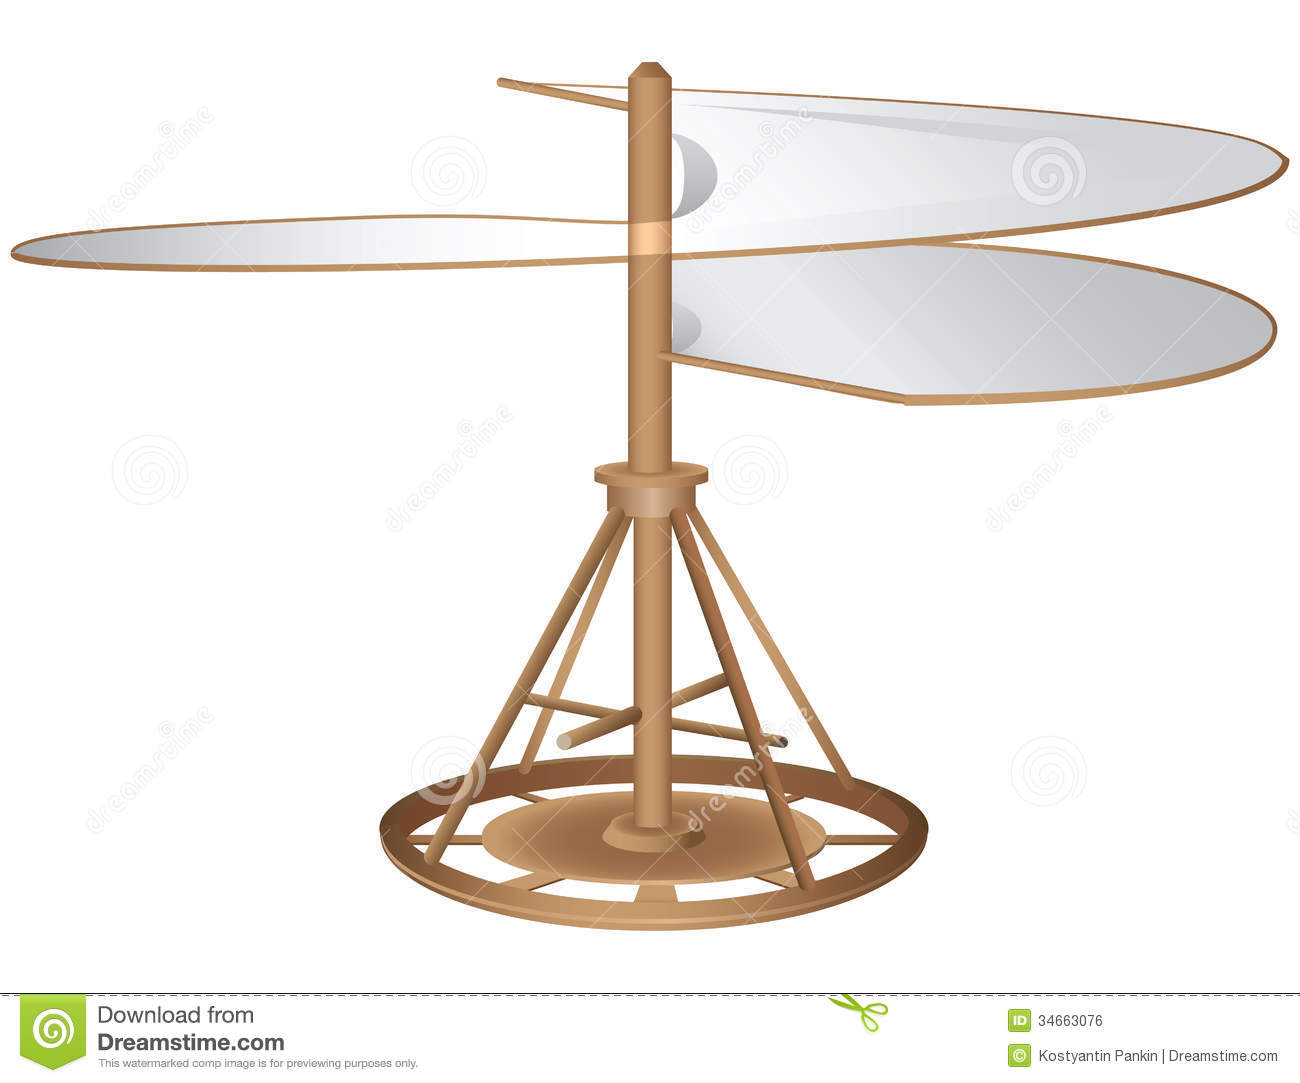 leonardo da vinci inventions helicopter with Royalty Free Stock Image Flying Machine Prototype Aircraft Type Helicopter Vector Illustration Image34663076 on Hear For The First Time Leonardo Da Vincis Curious Viola Organista 180947773 besides Royalty Free Stock Image Flying Machine Prototype Aircraft Type Helicopter Vector Illustration Image34663076 in addition Leonardo Da Vinci His Contribution To Engineering besides Leonardo Da Vinci Virgin And Child With furthermore 67137.